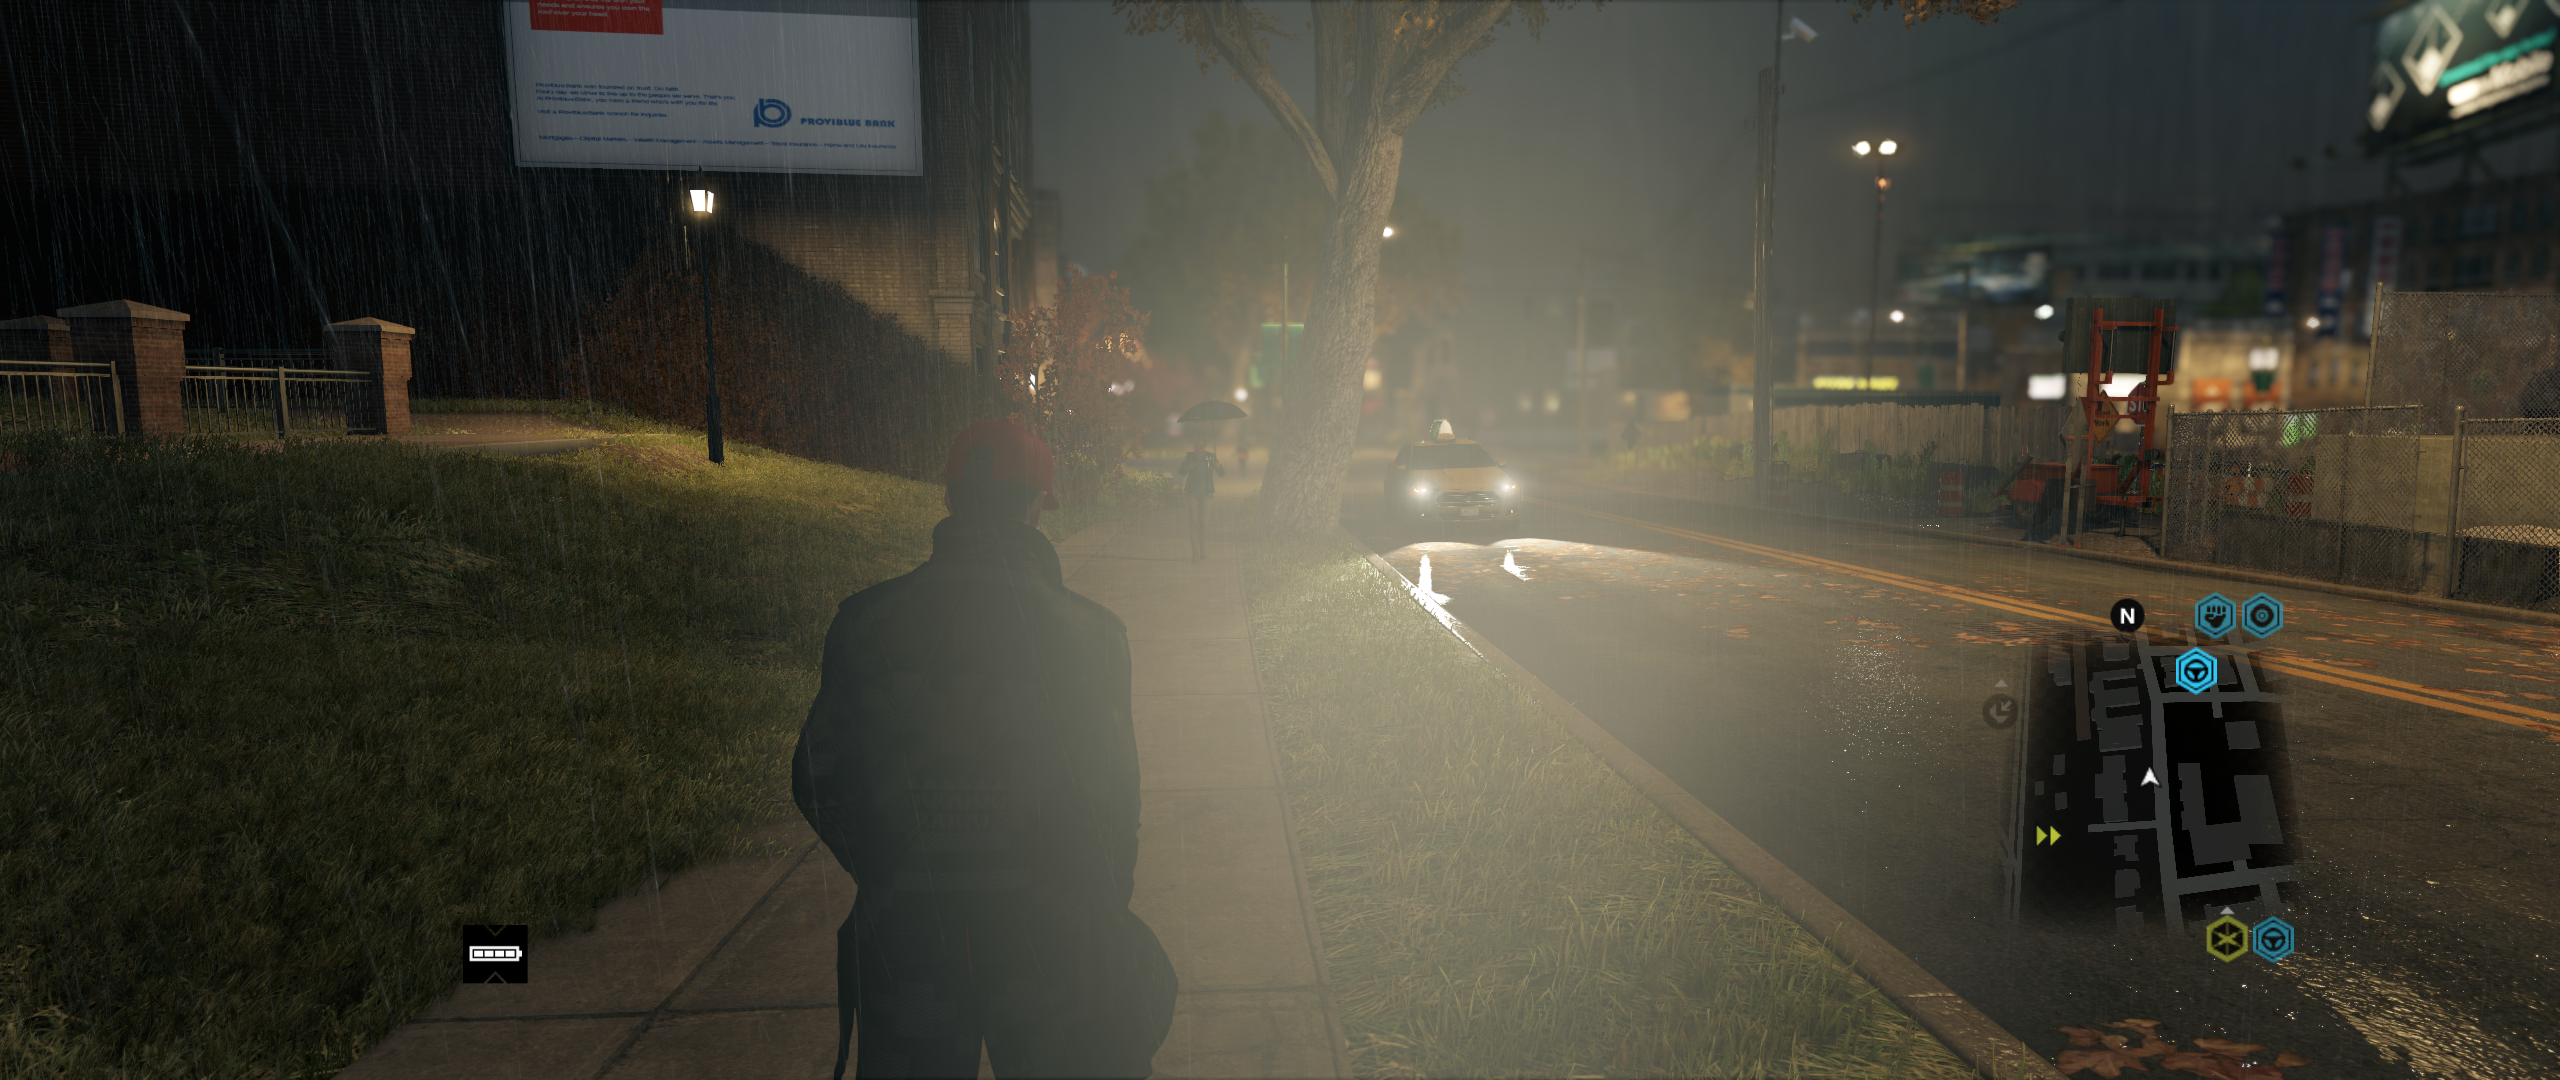 Watch Dogs  Not Getting Fps